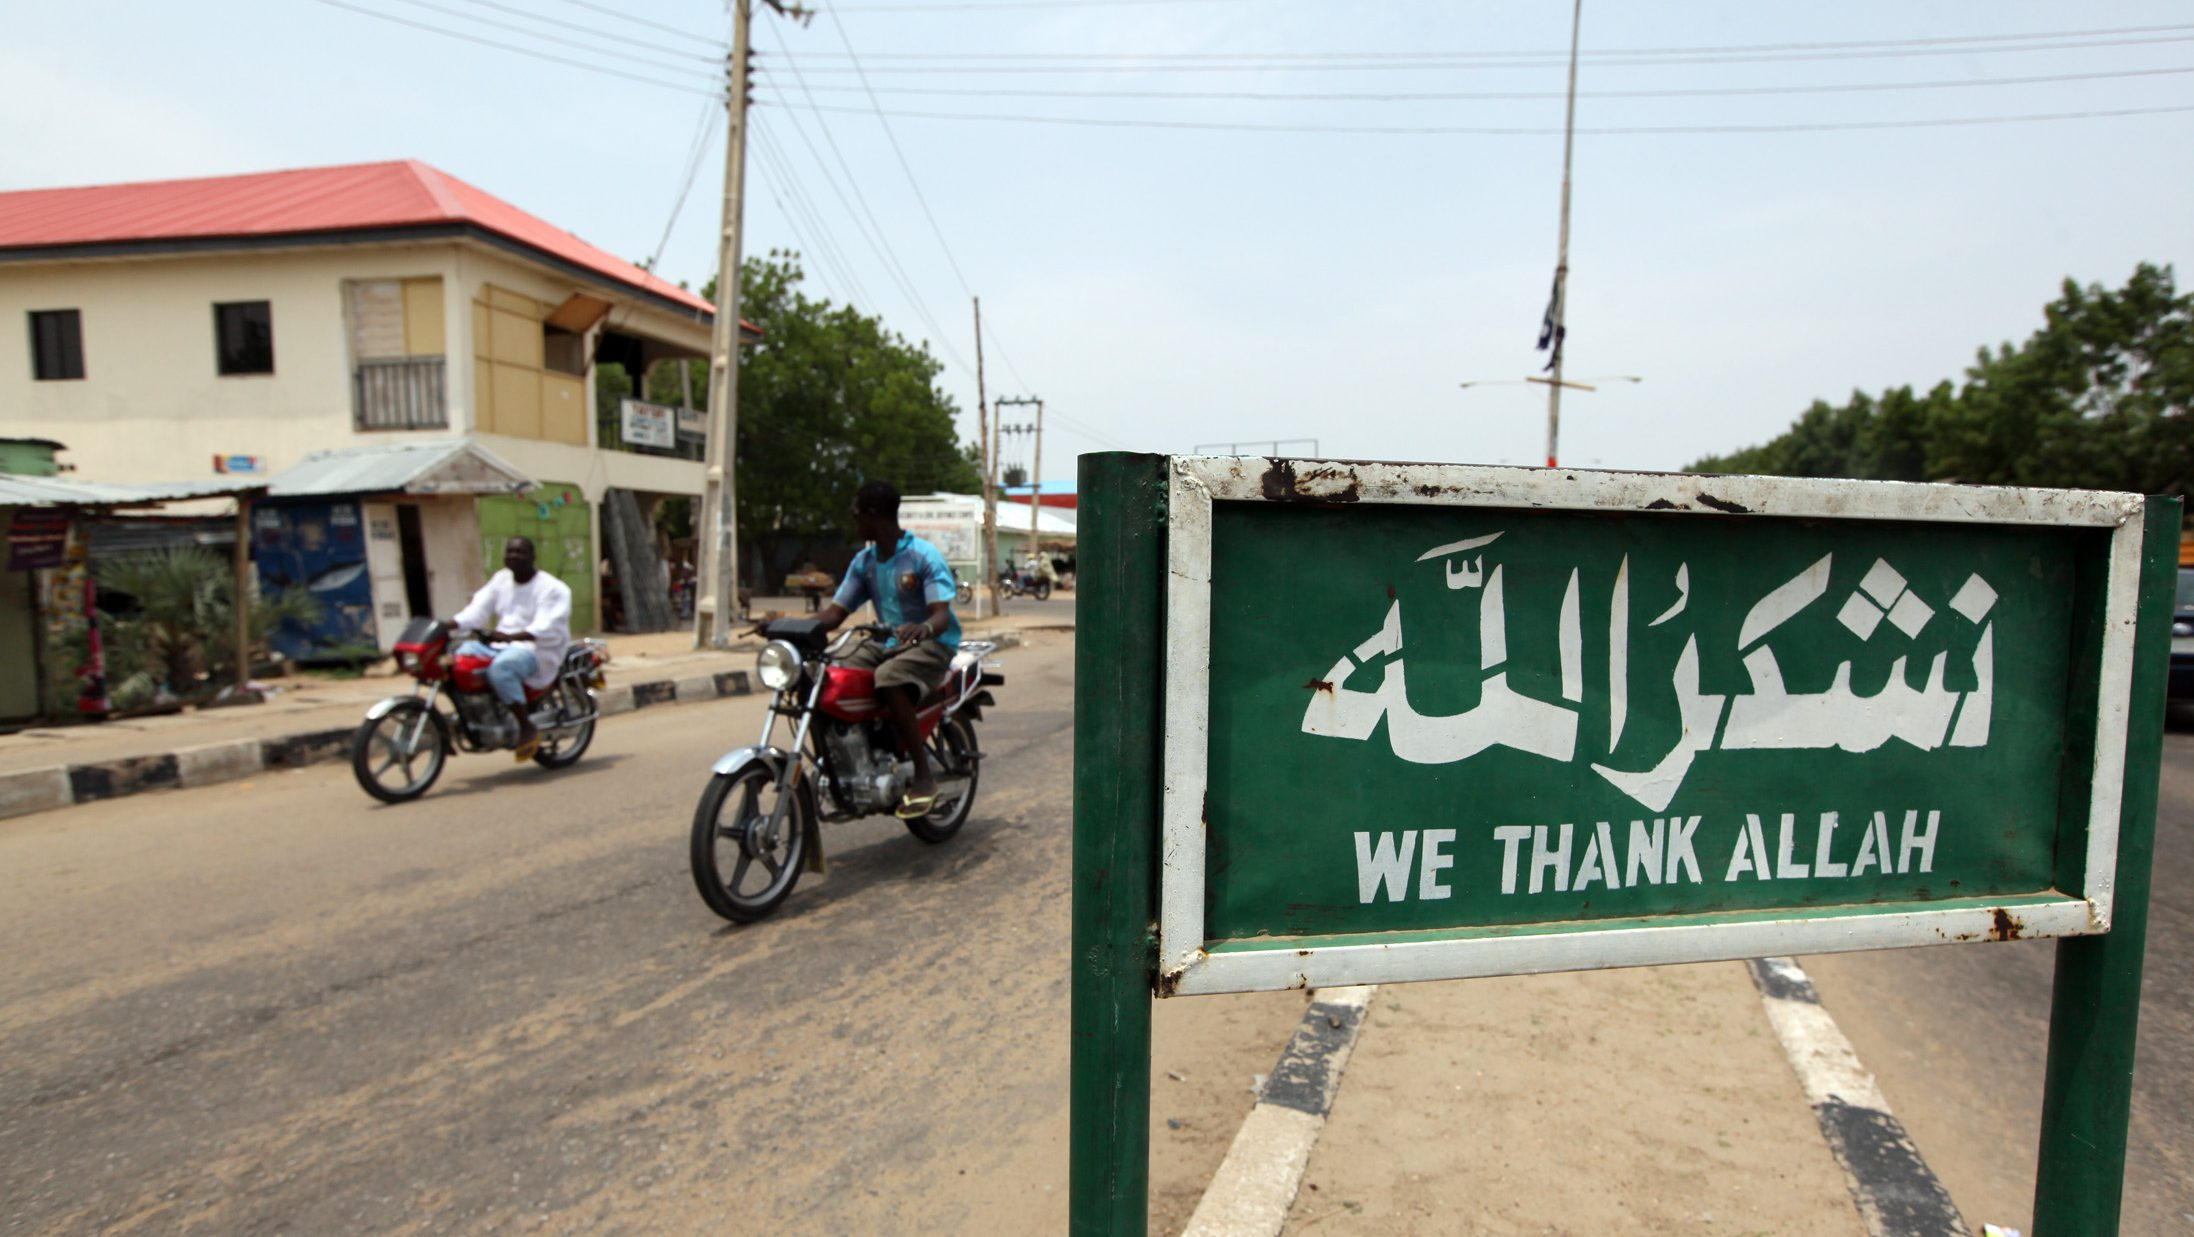 An Islamic signboard is seen along a road in the northeastern state of Borno